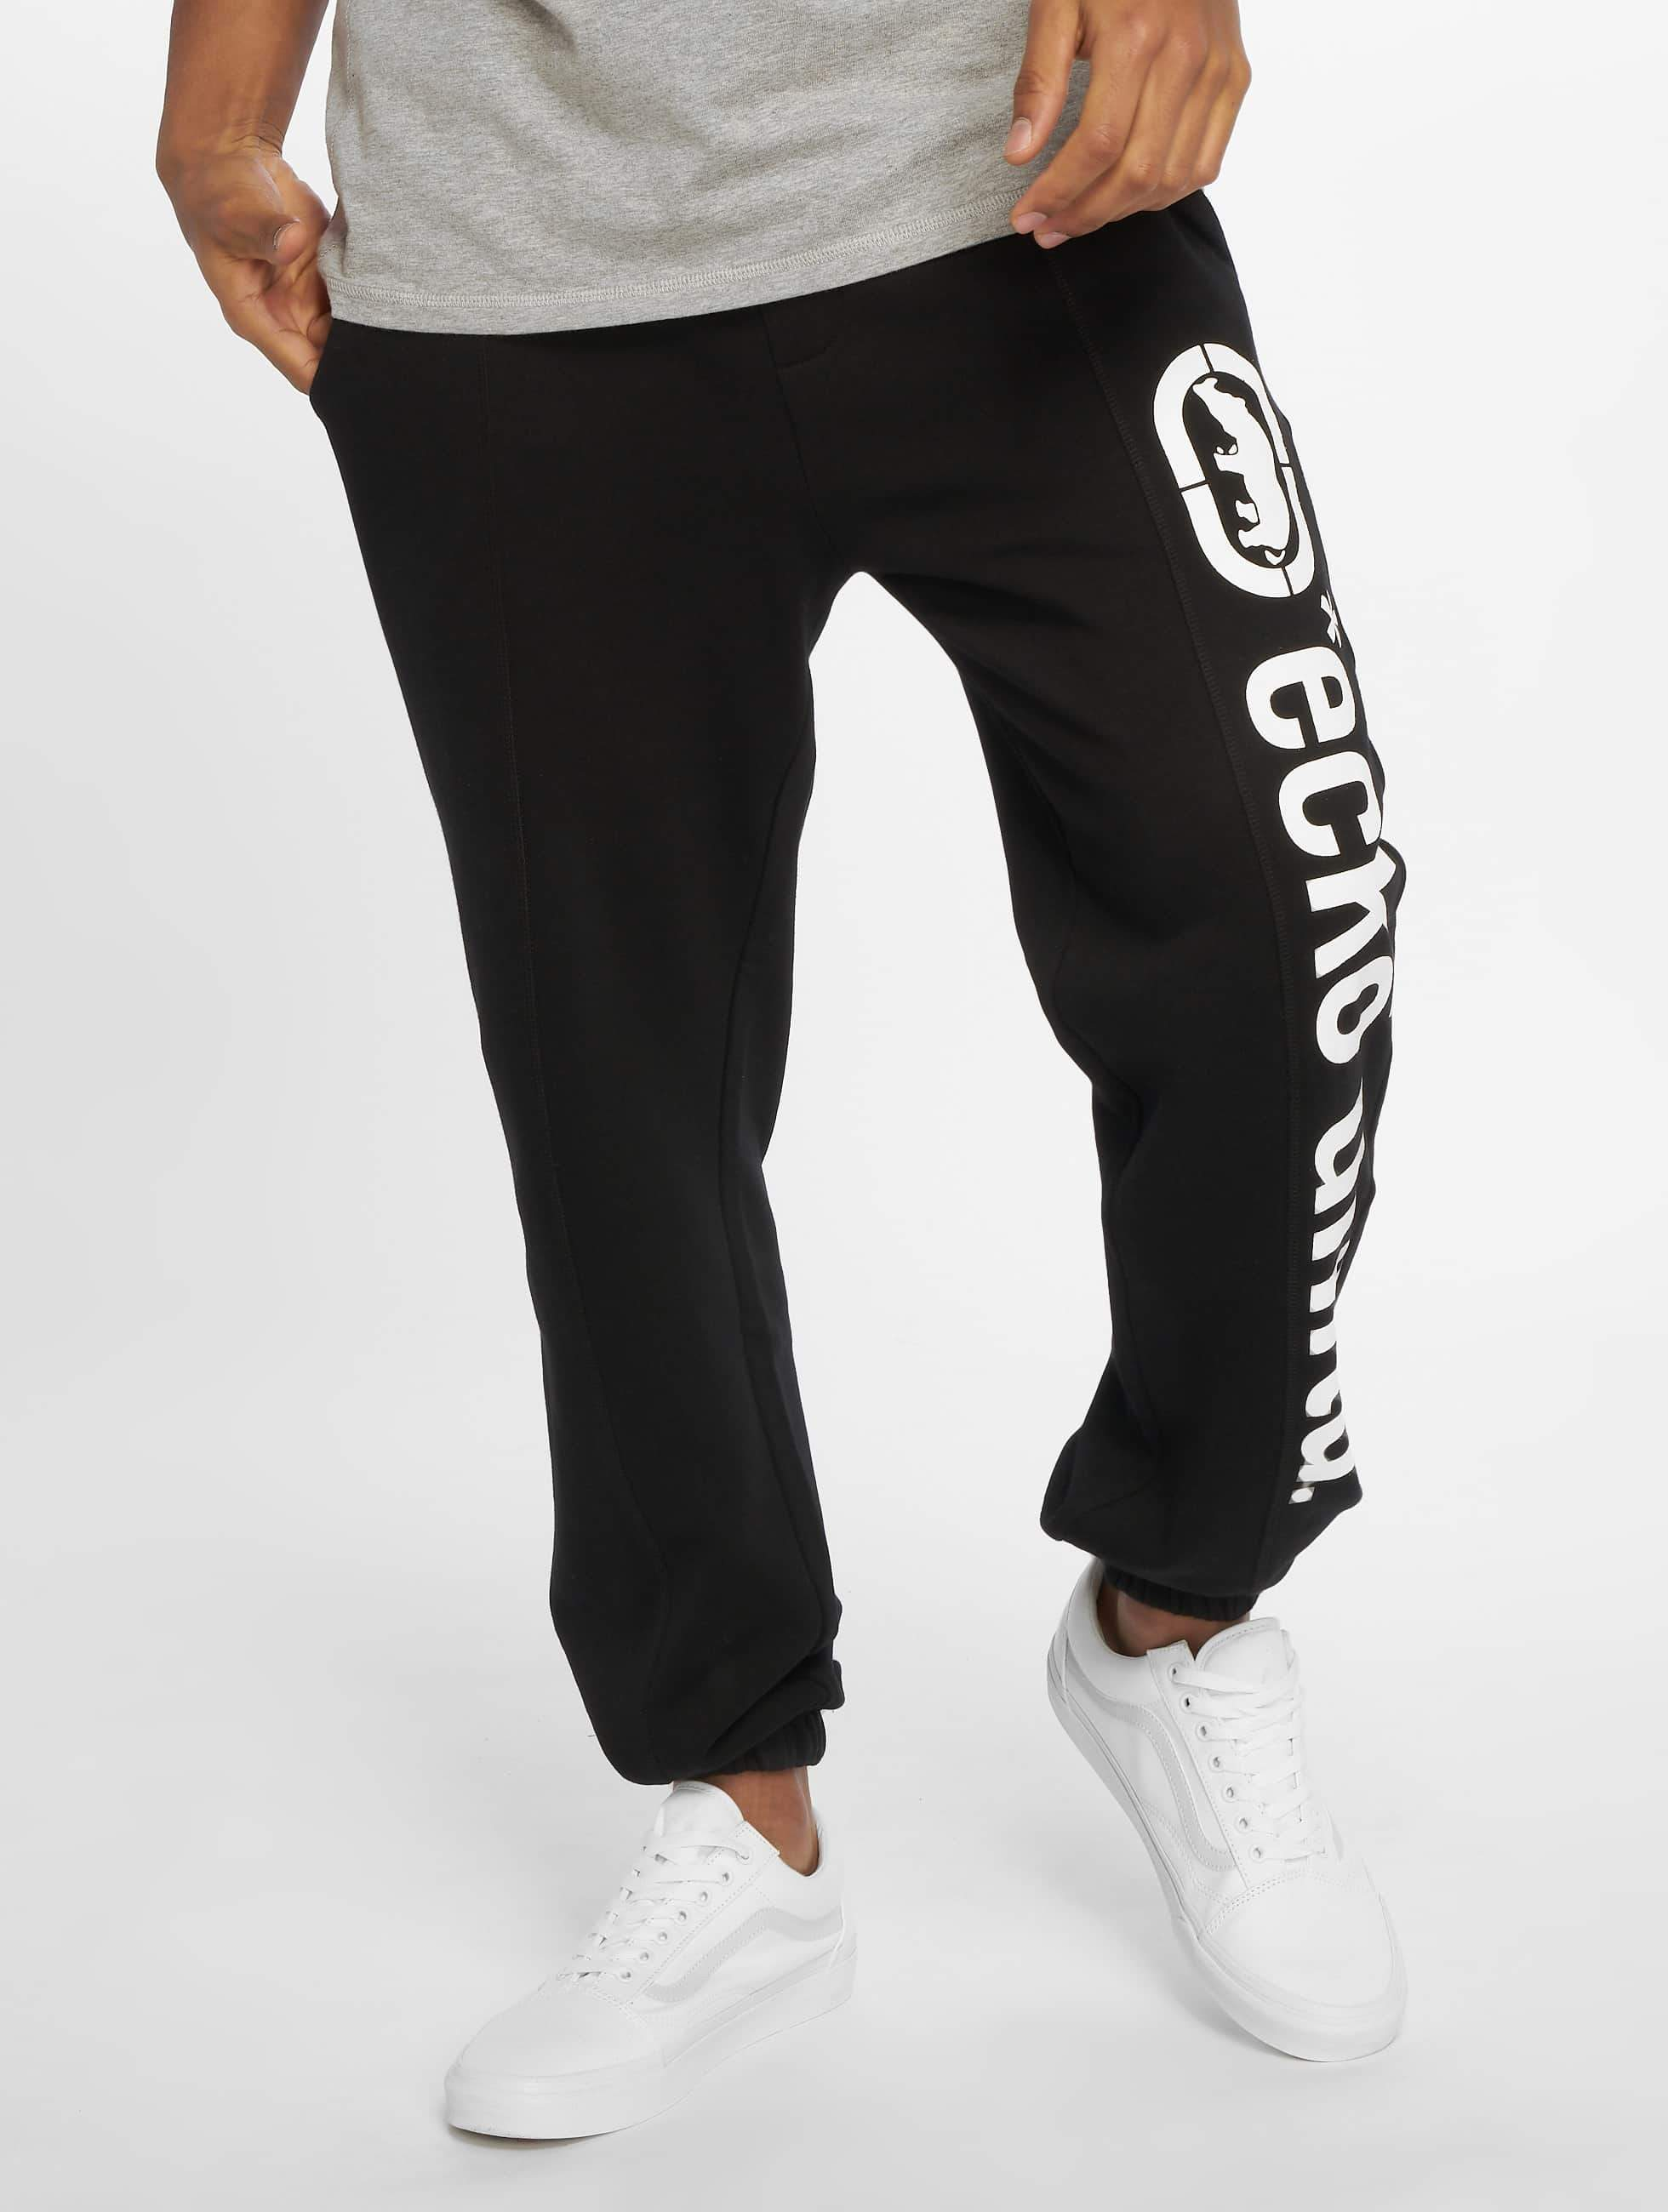 Ecko Unltd. / Sweat Pant West Buddy in black 2XL